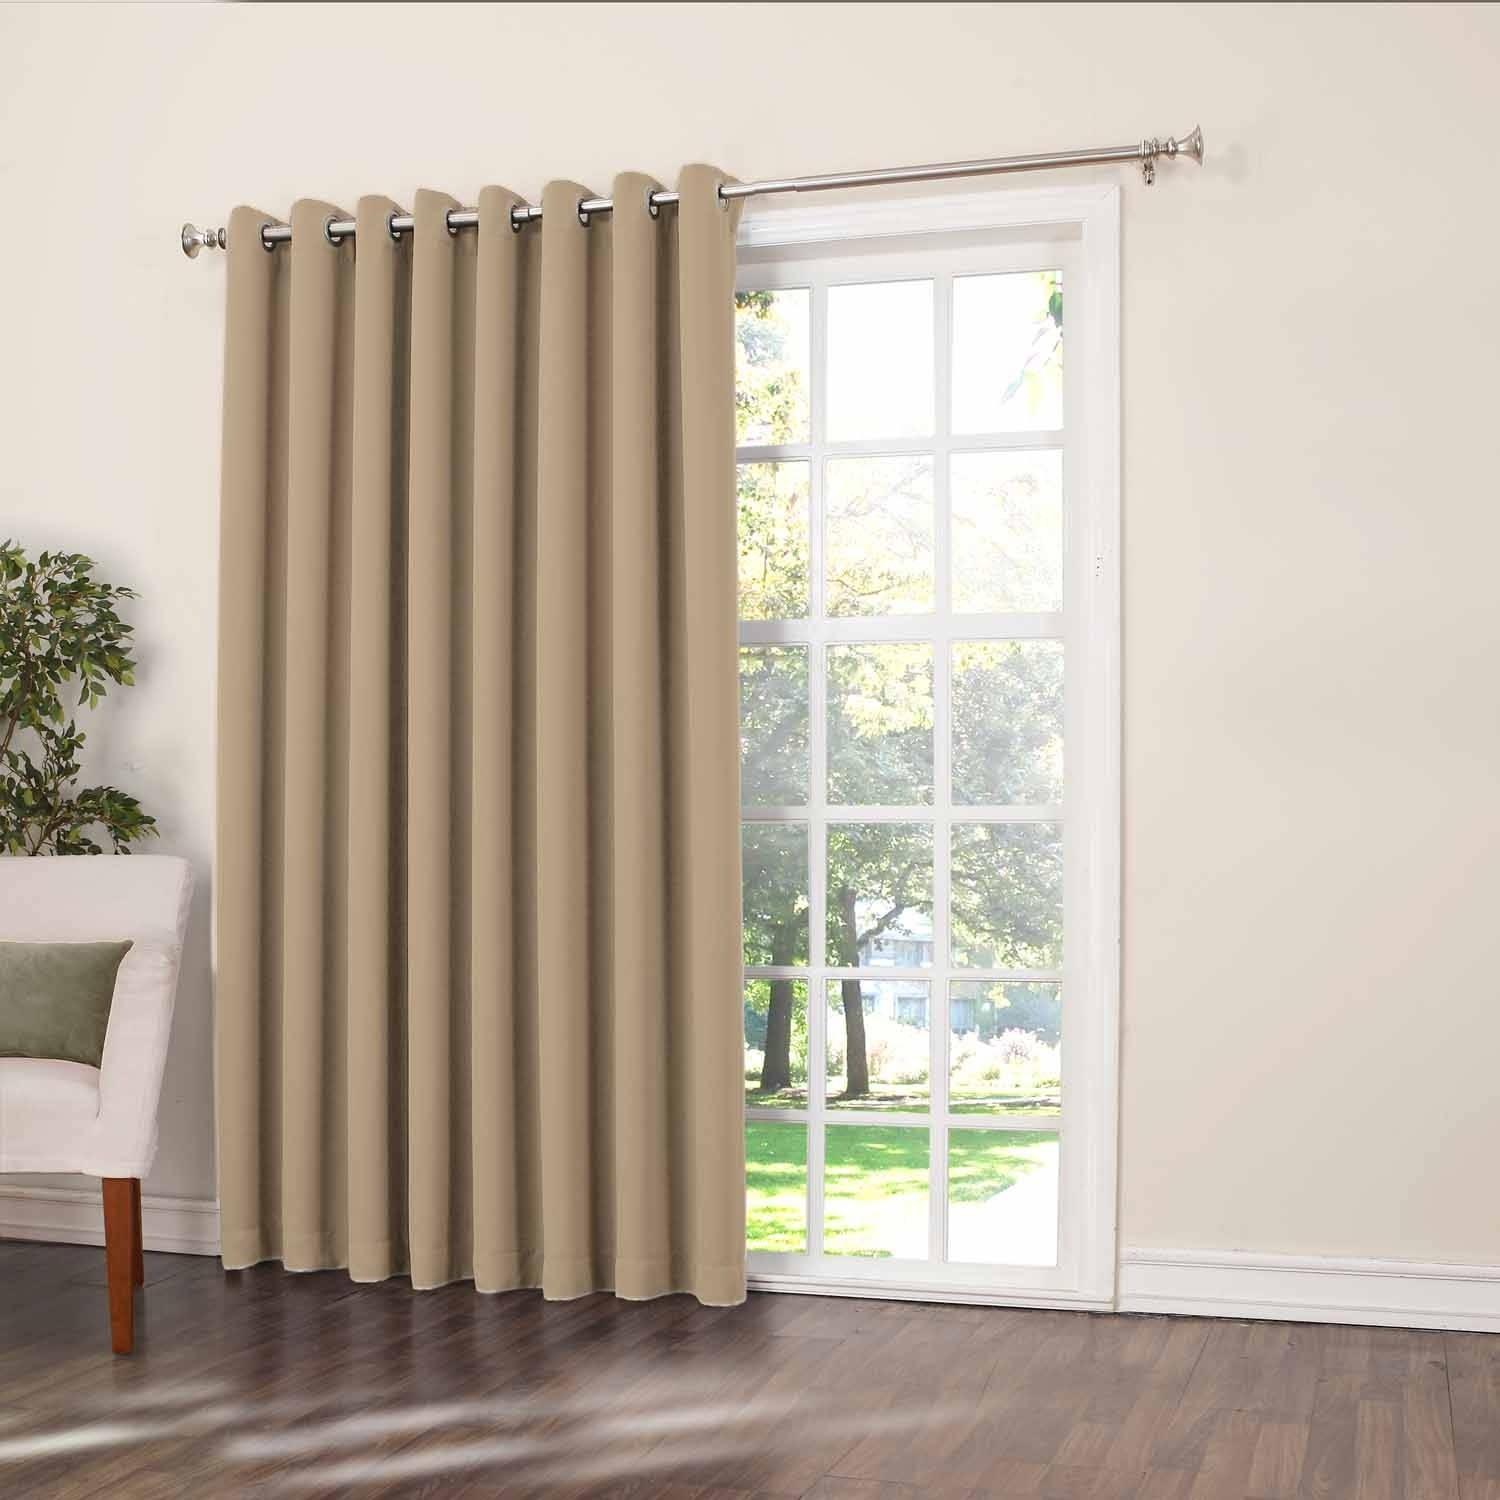 40 Professionally Curtains Sliding Glass Doors Inspiration That